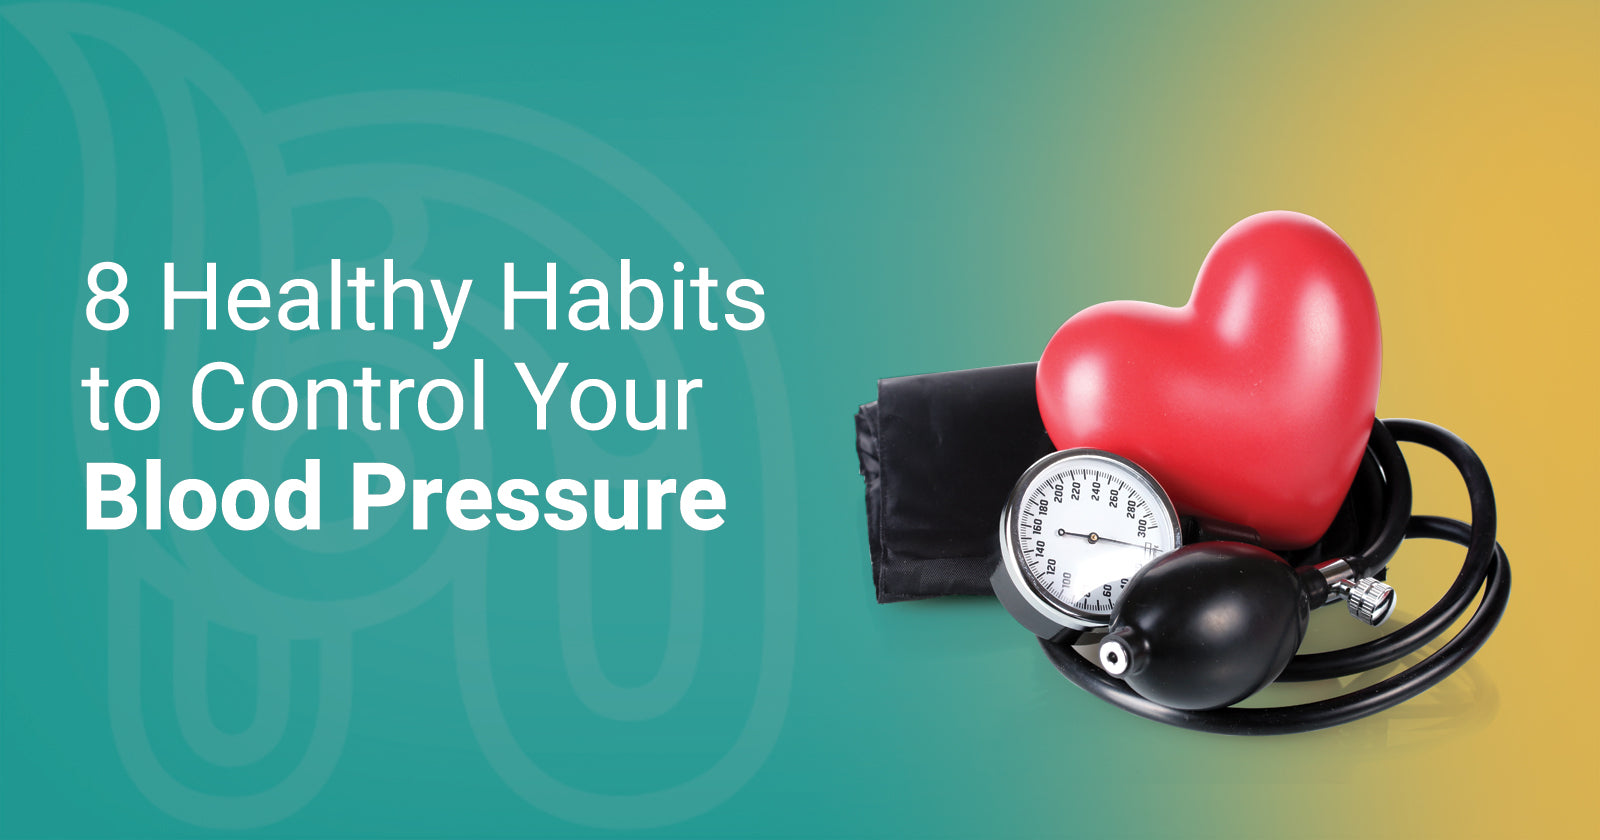 8 Healthy Habits to Control Your Blood pressure